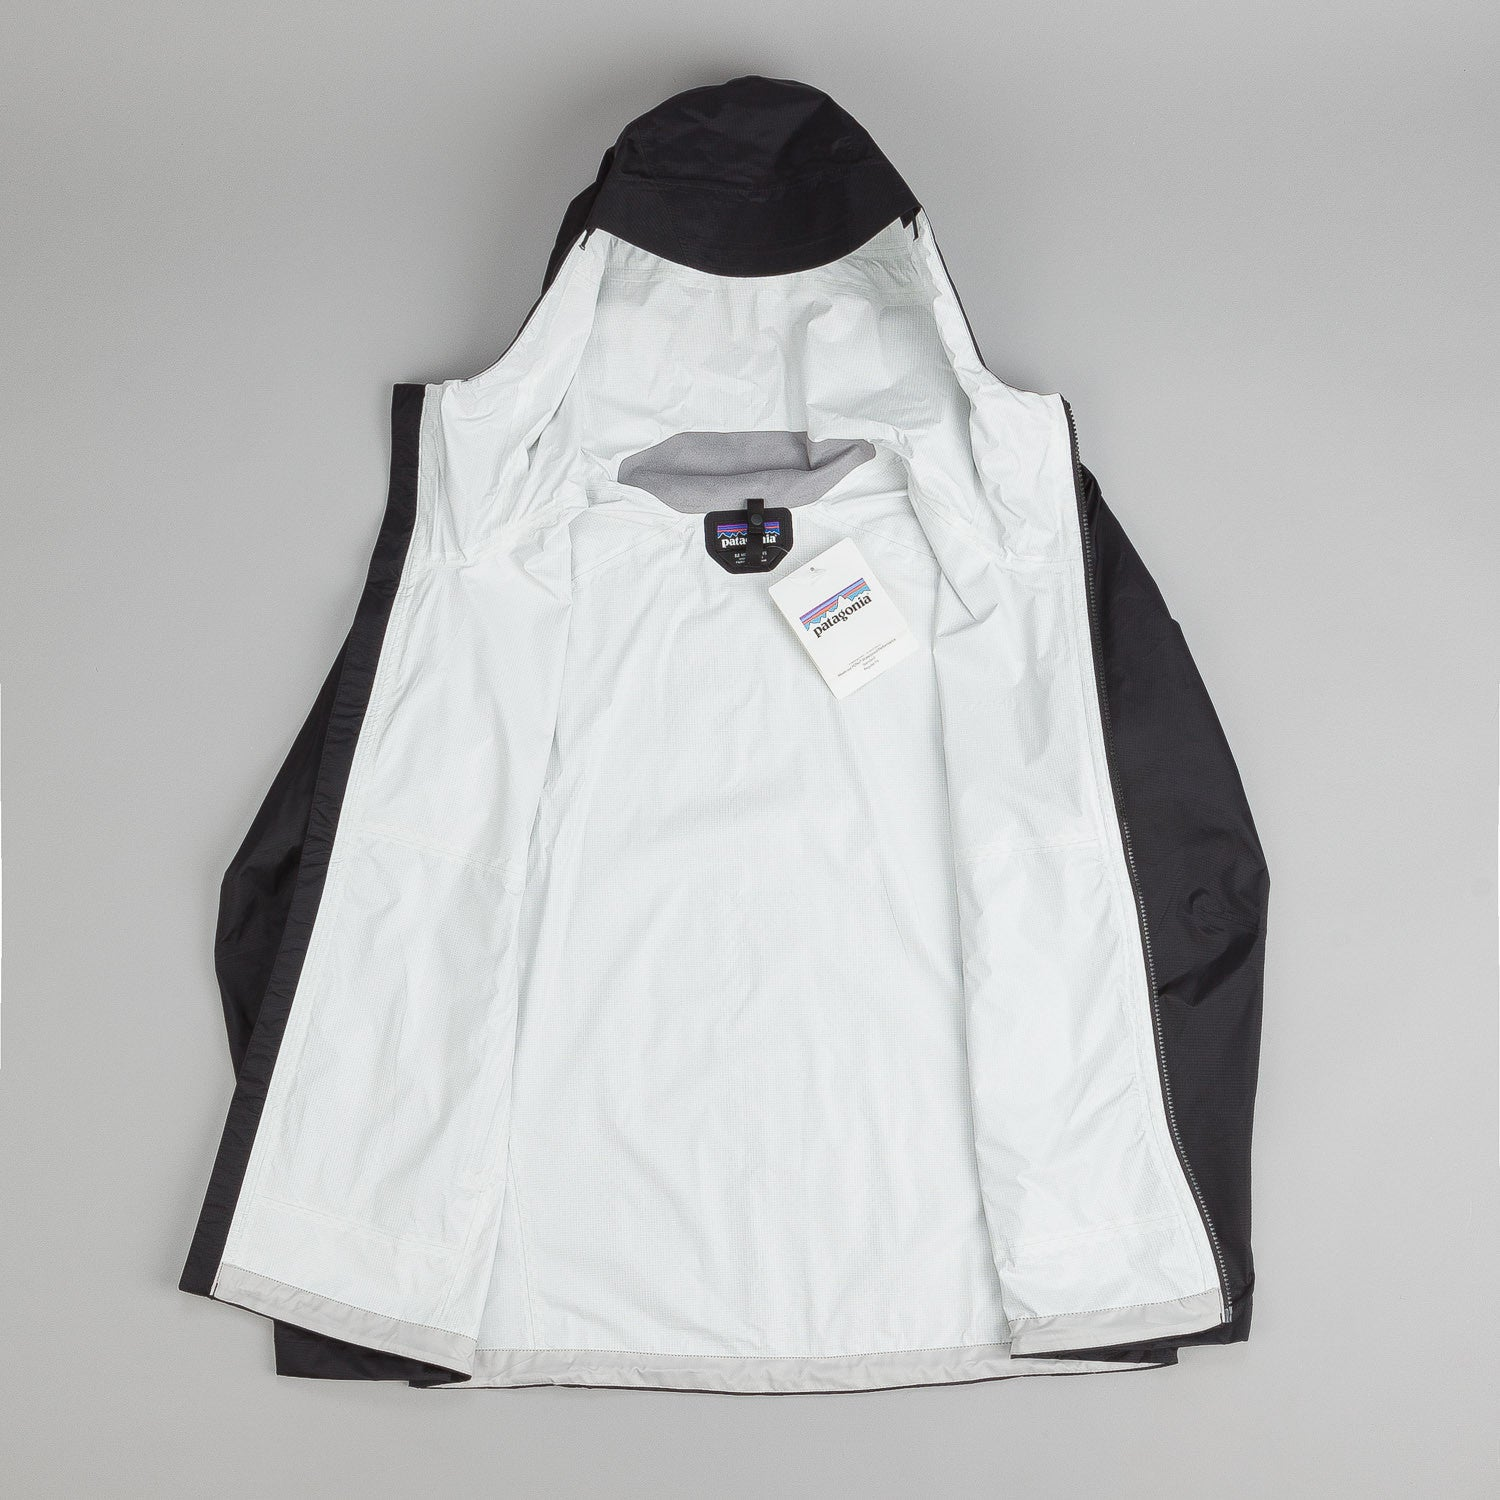 Patagonia Torrentshell Jacket - Black / White